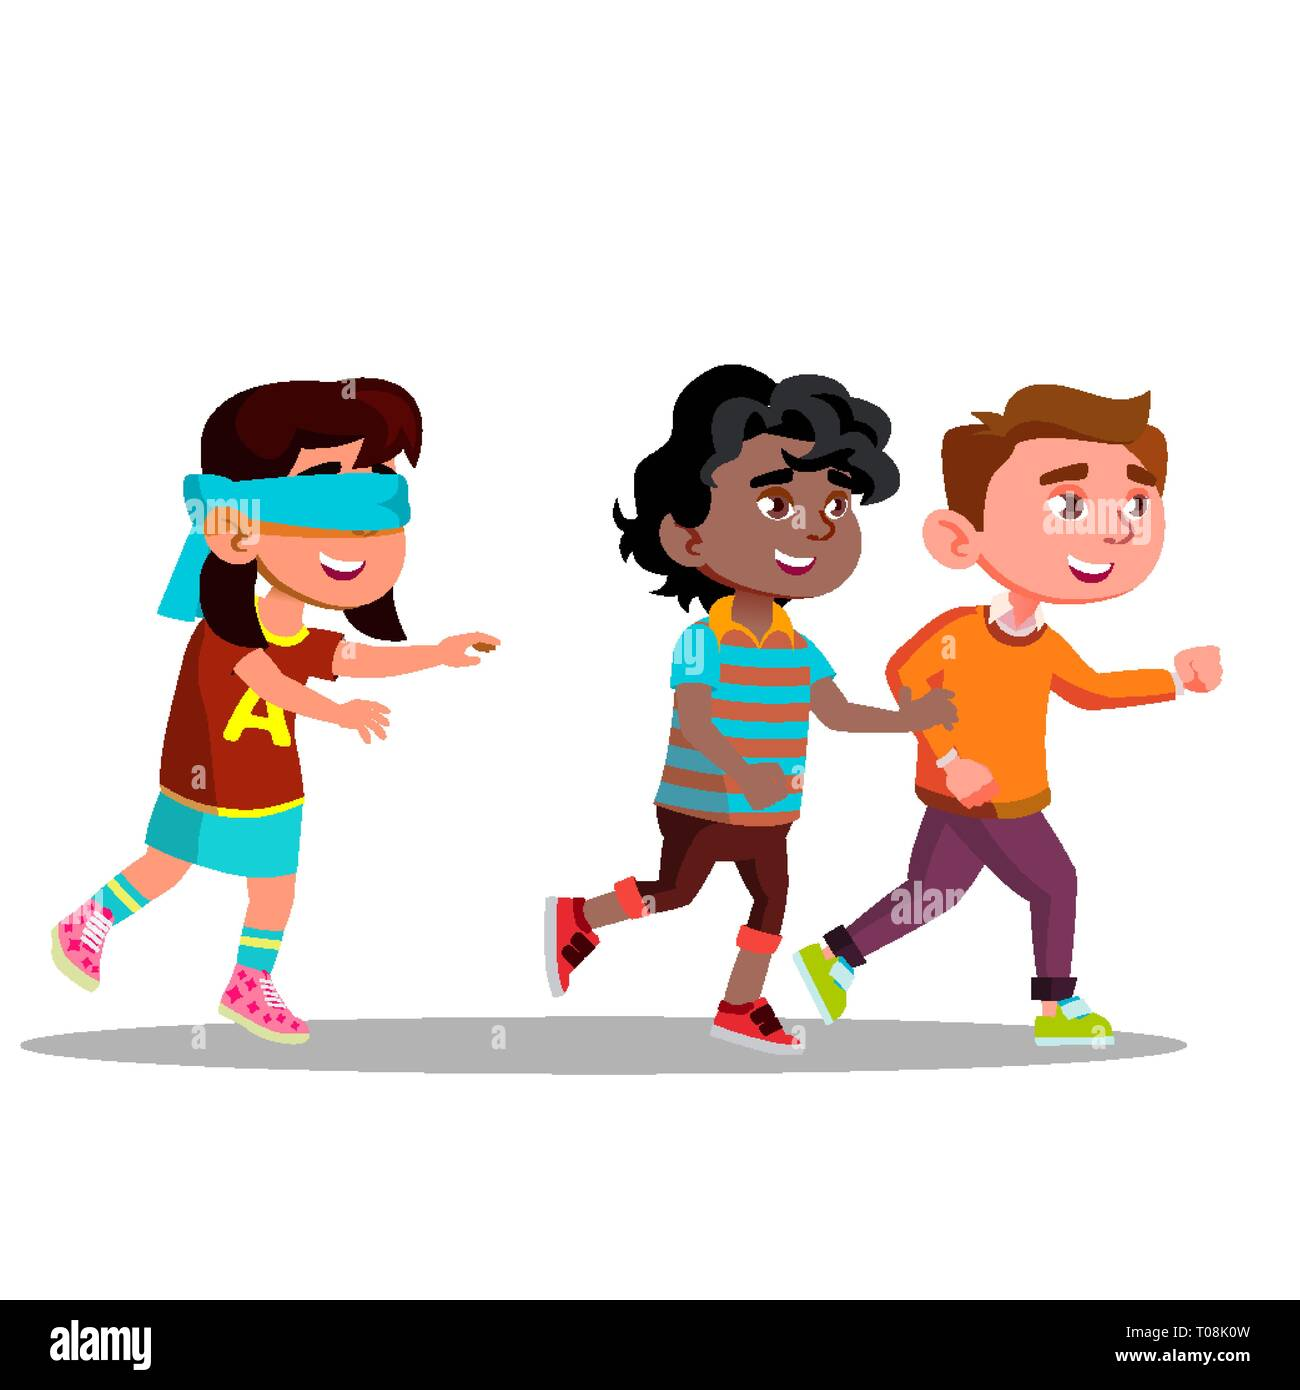 Blindfolded Girl With Arms Outstretched Looking For Friends Running Away Vector Flat Cartoon Illustration Stock Vector